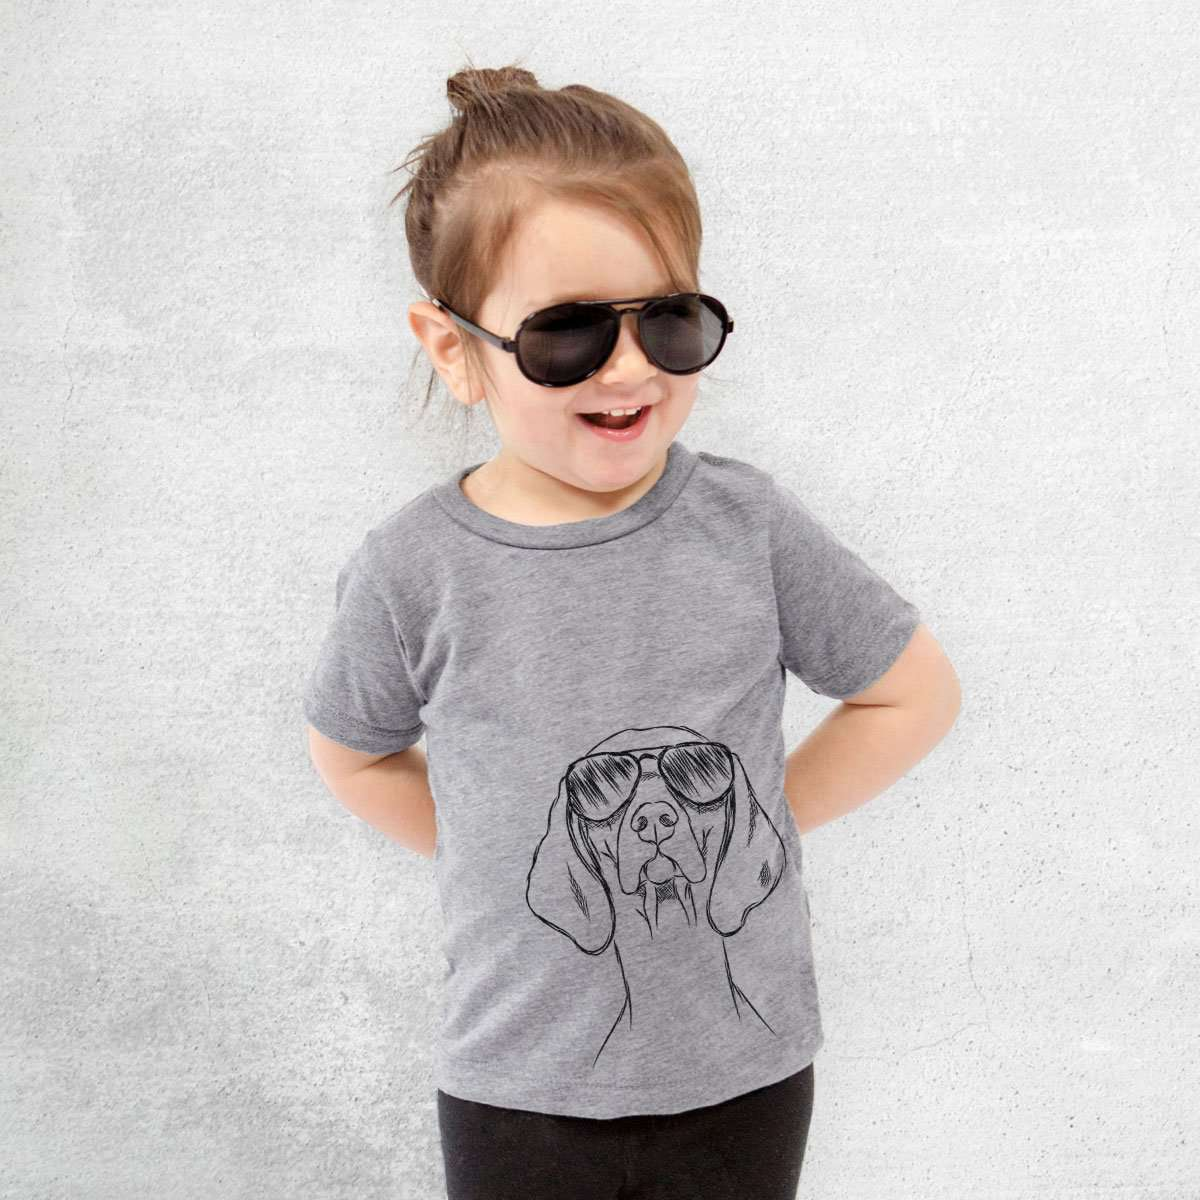 Sawyer the Vizsla - Kids/Youth/Toddler Shirt